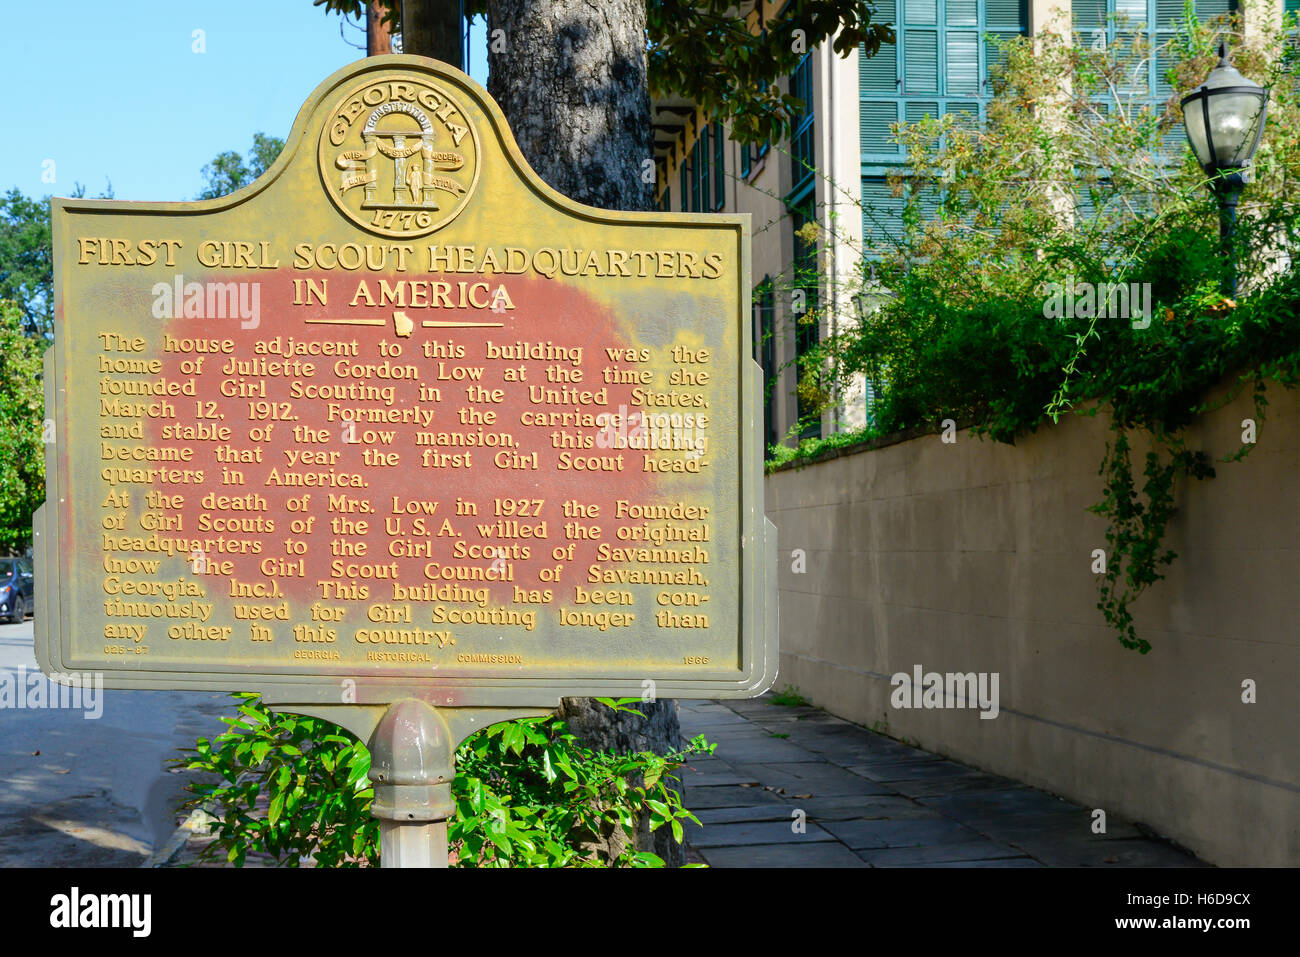 A bronze plaque marks First Girl Scout Headquarters in America 1912, adjacent to home of founder, Juliette Low, - Stock Image